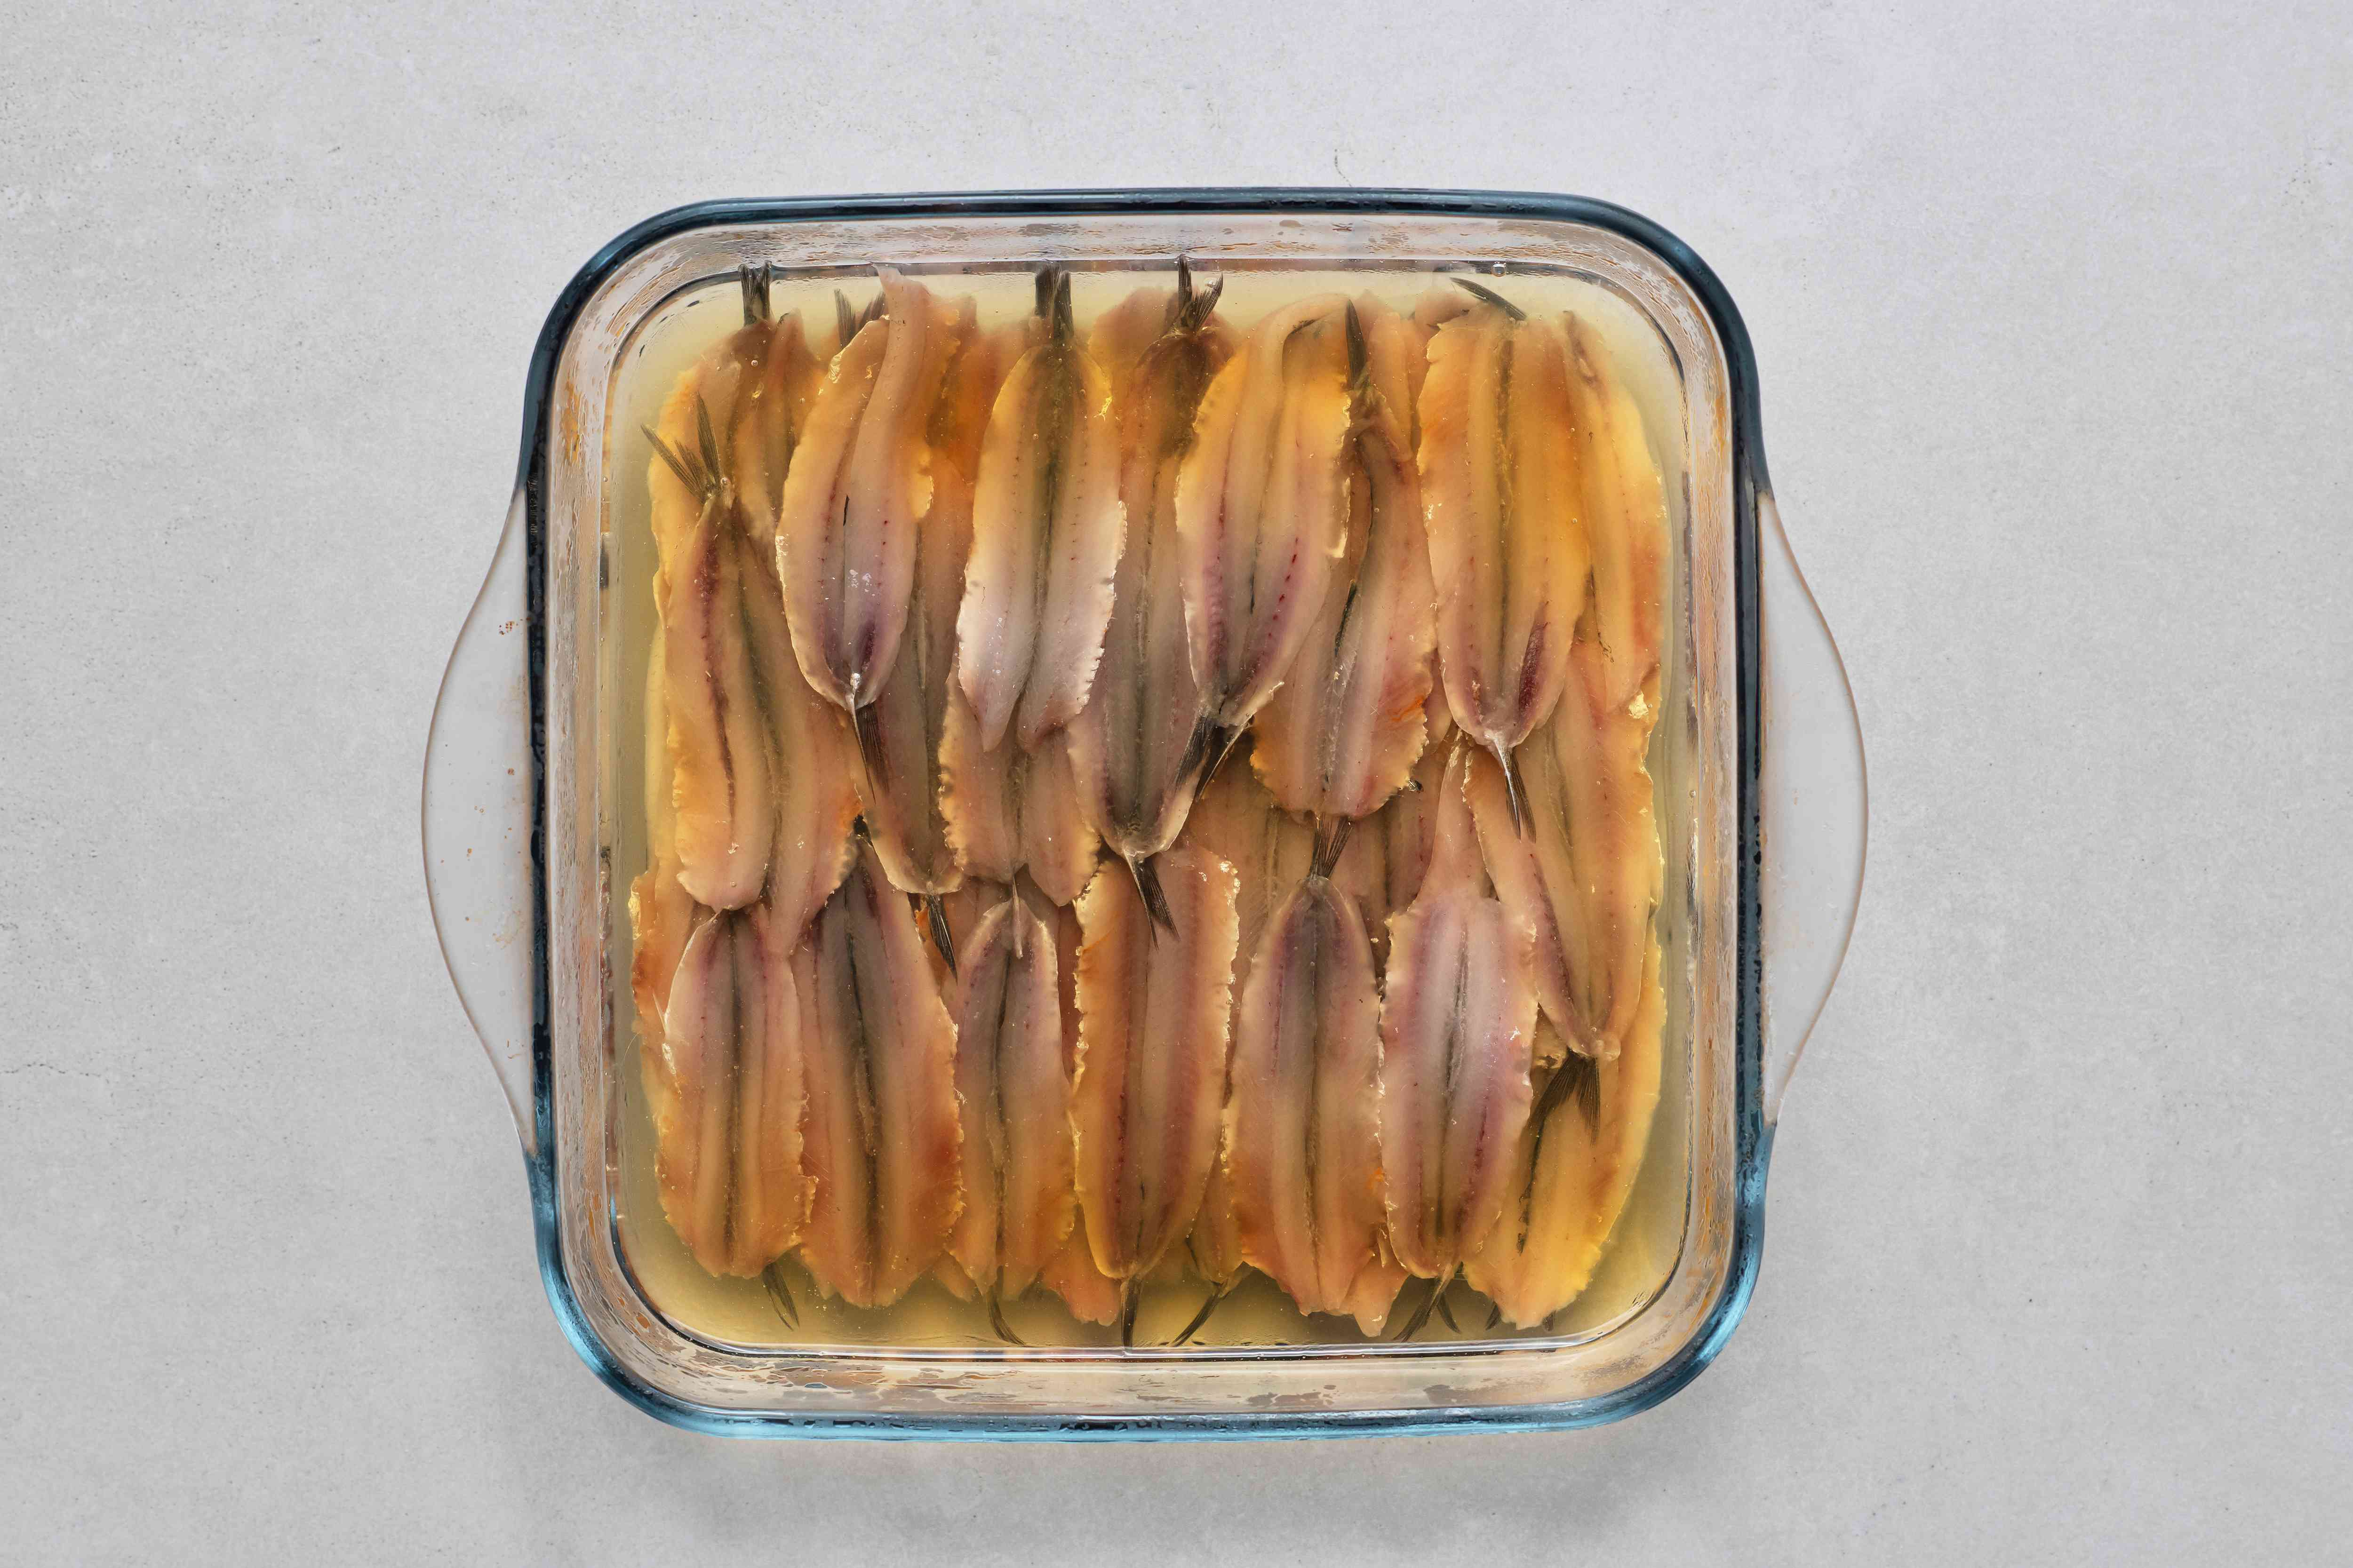 vinegar in a bowl with frozen anchovies in a glass baking dish